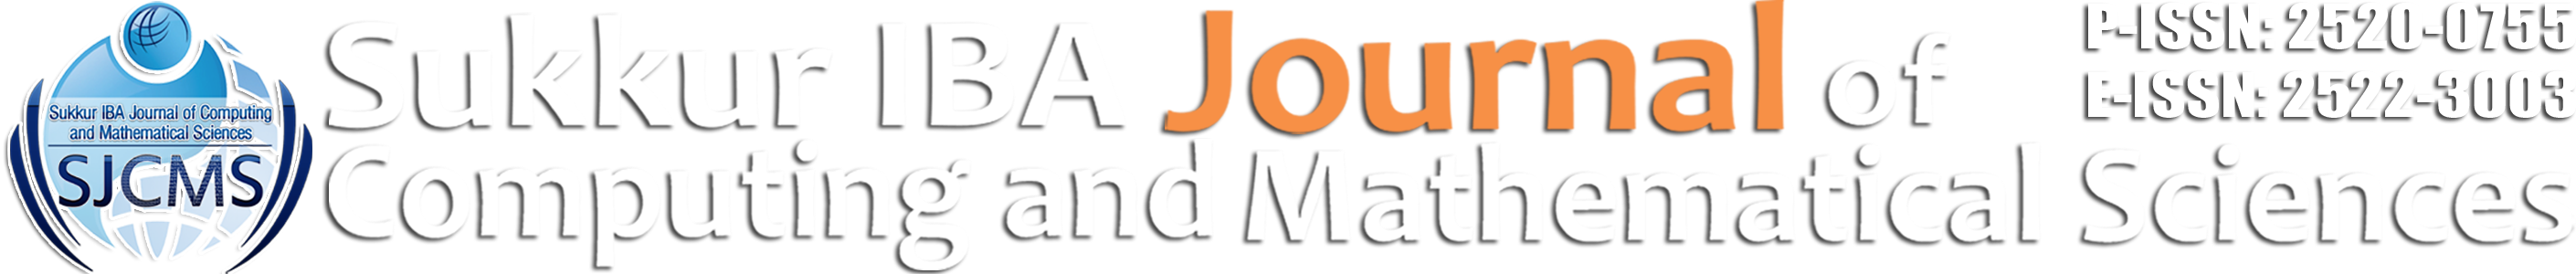 Sukkur IBA Journal of Computing and Mathematical Sciences